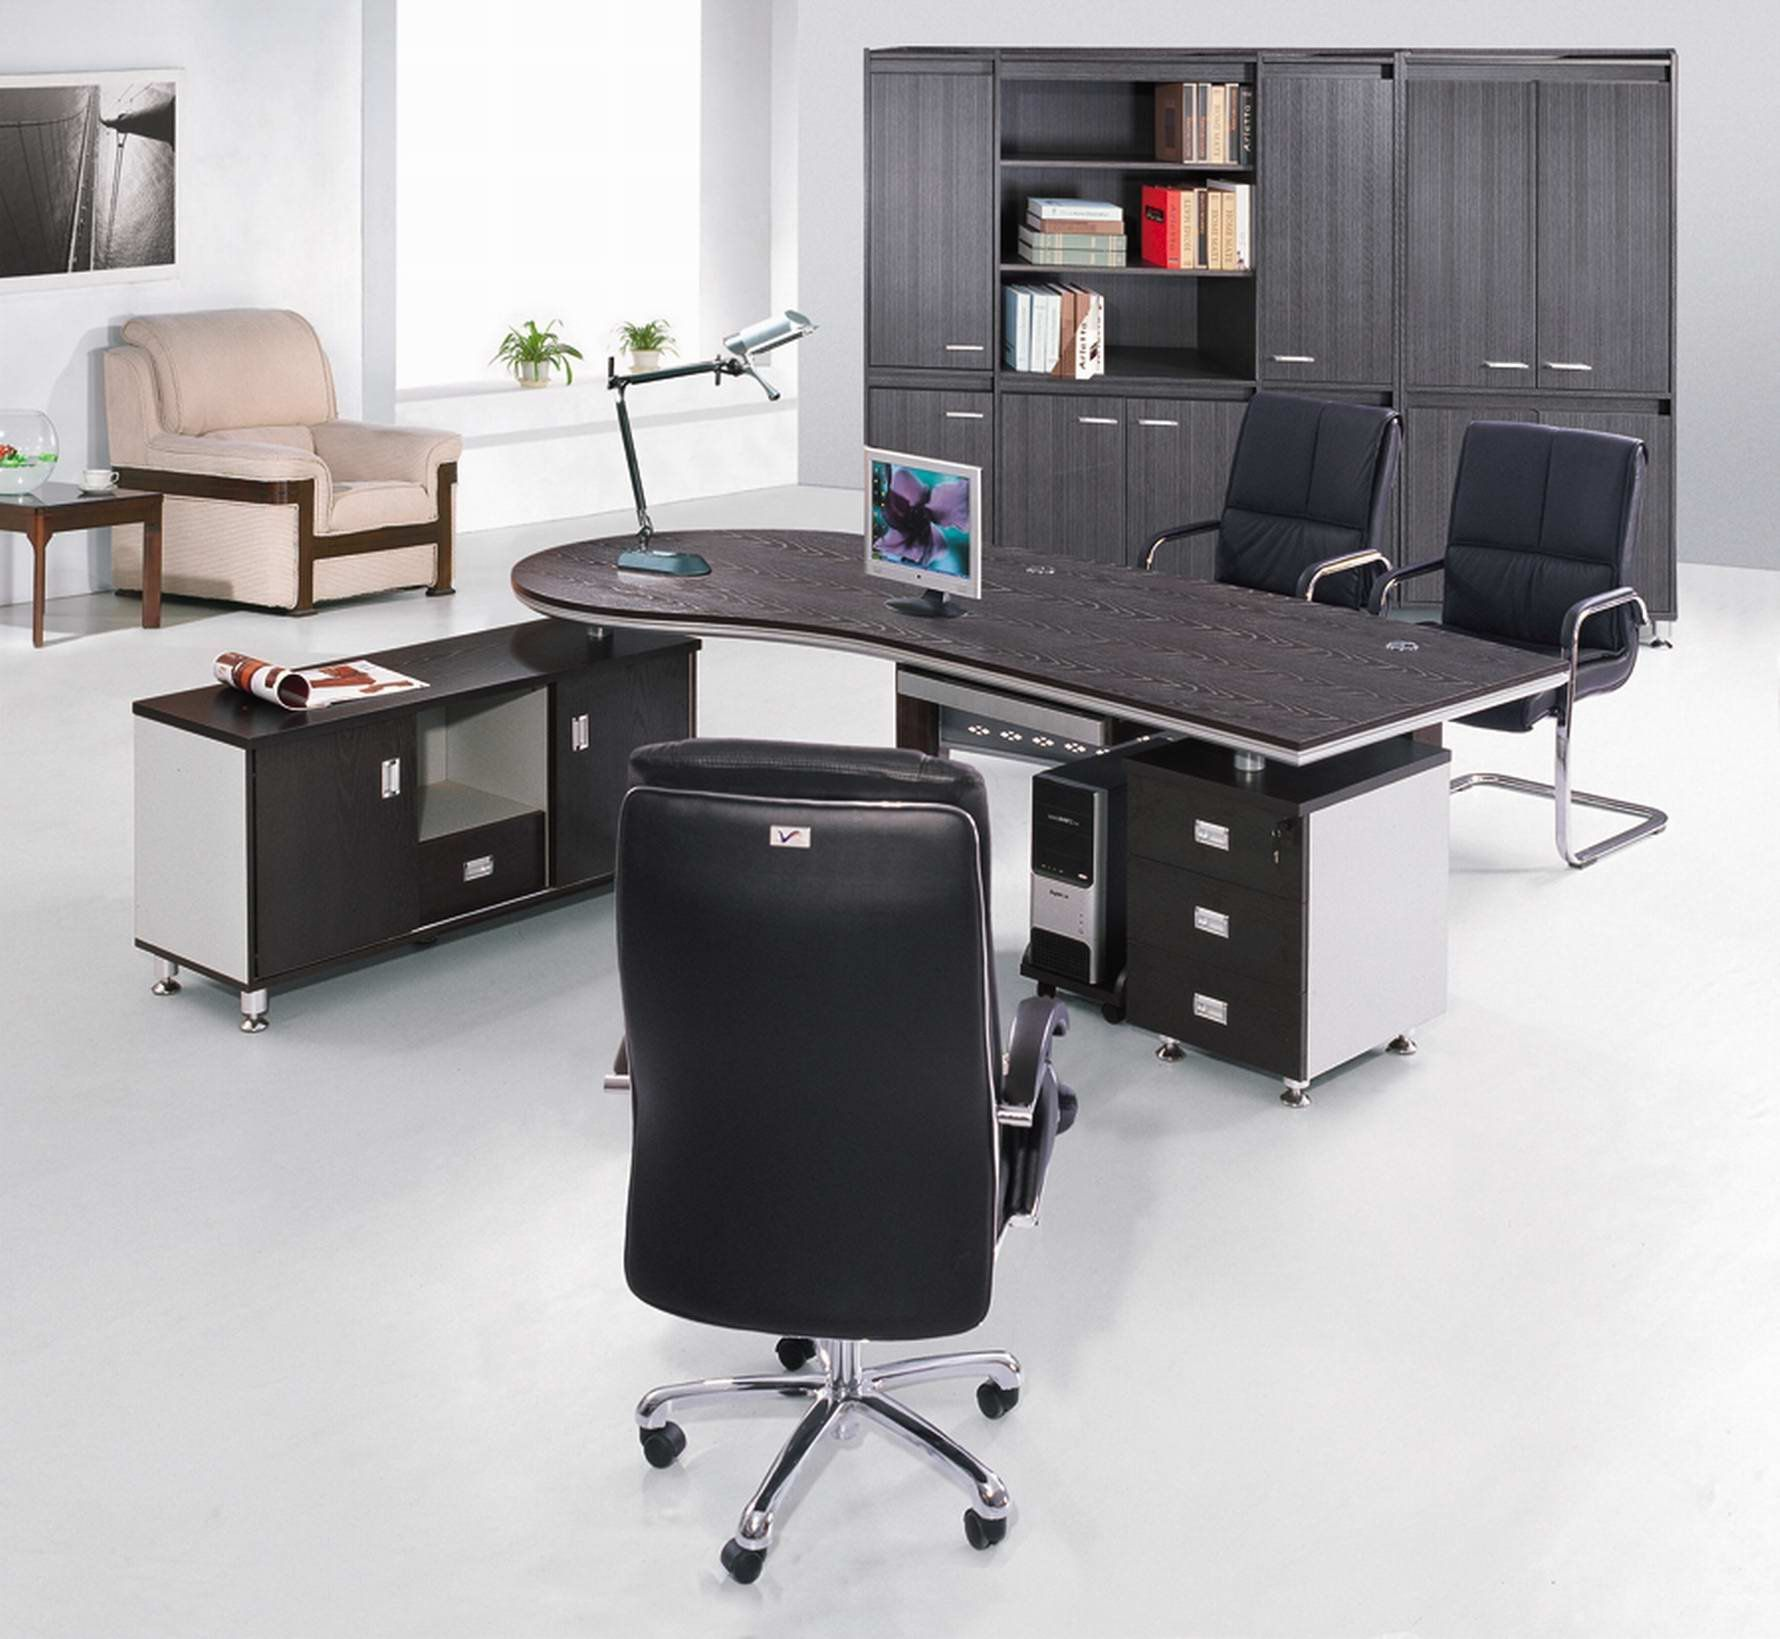 systems furniture office pinterest system furniture office